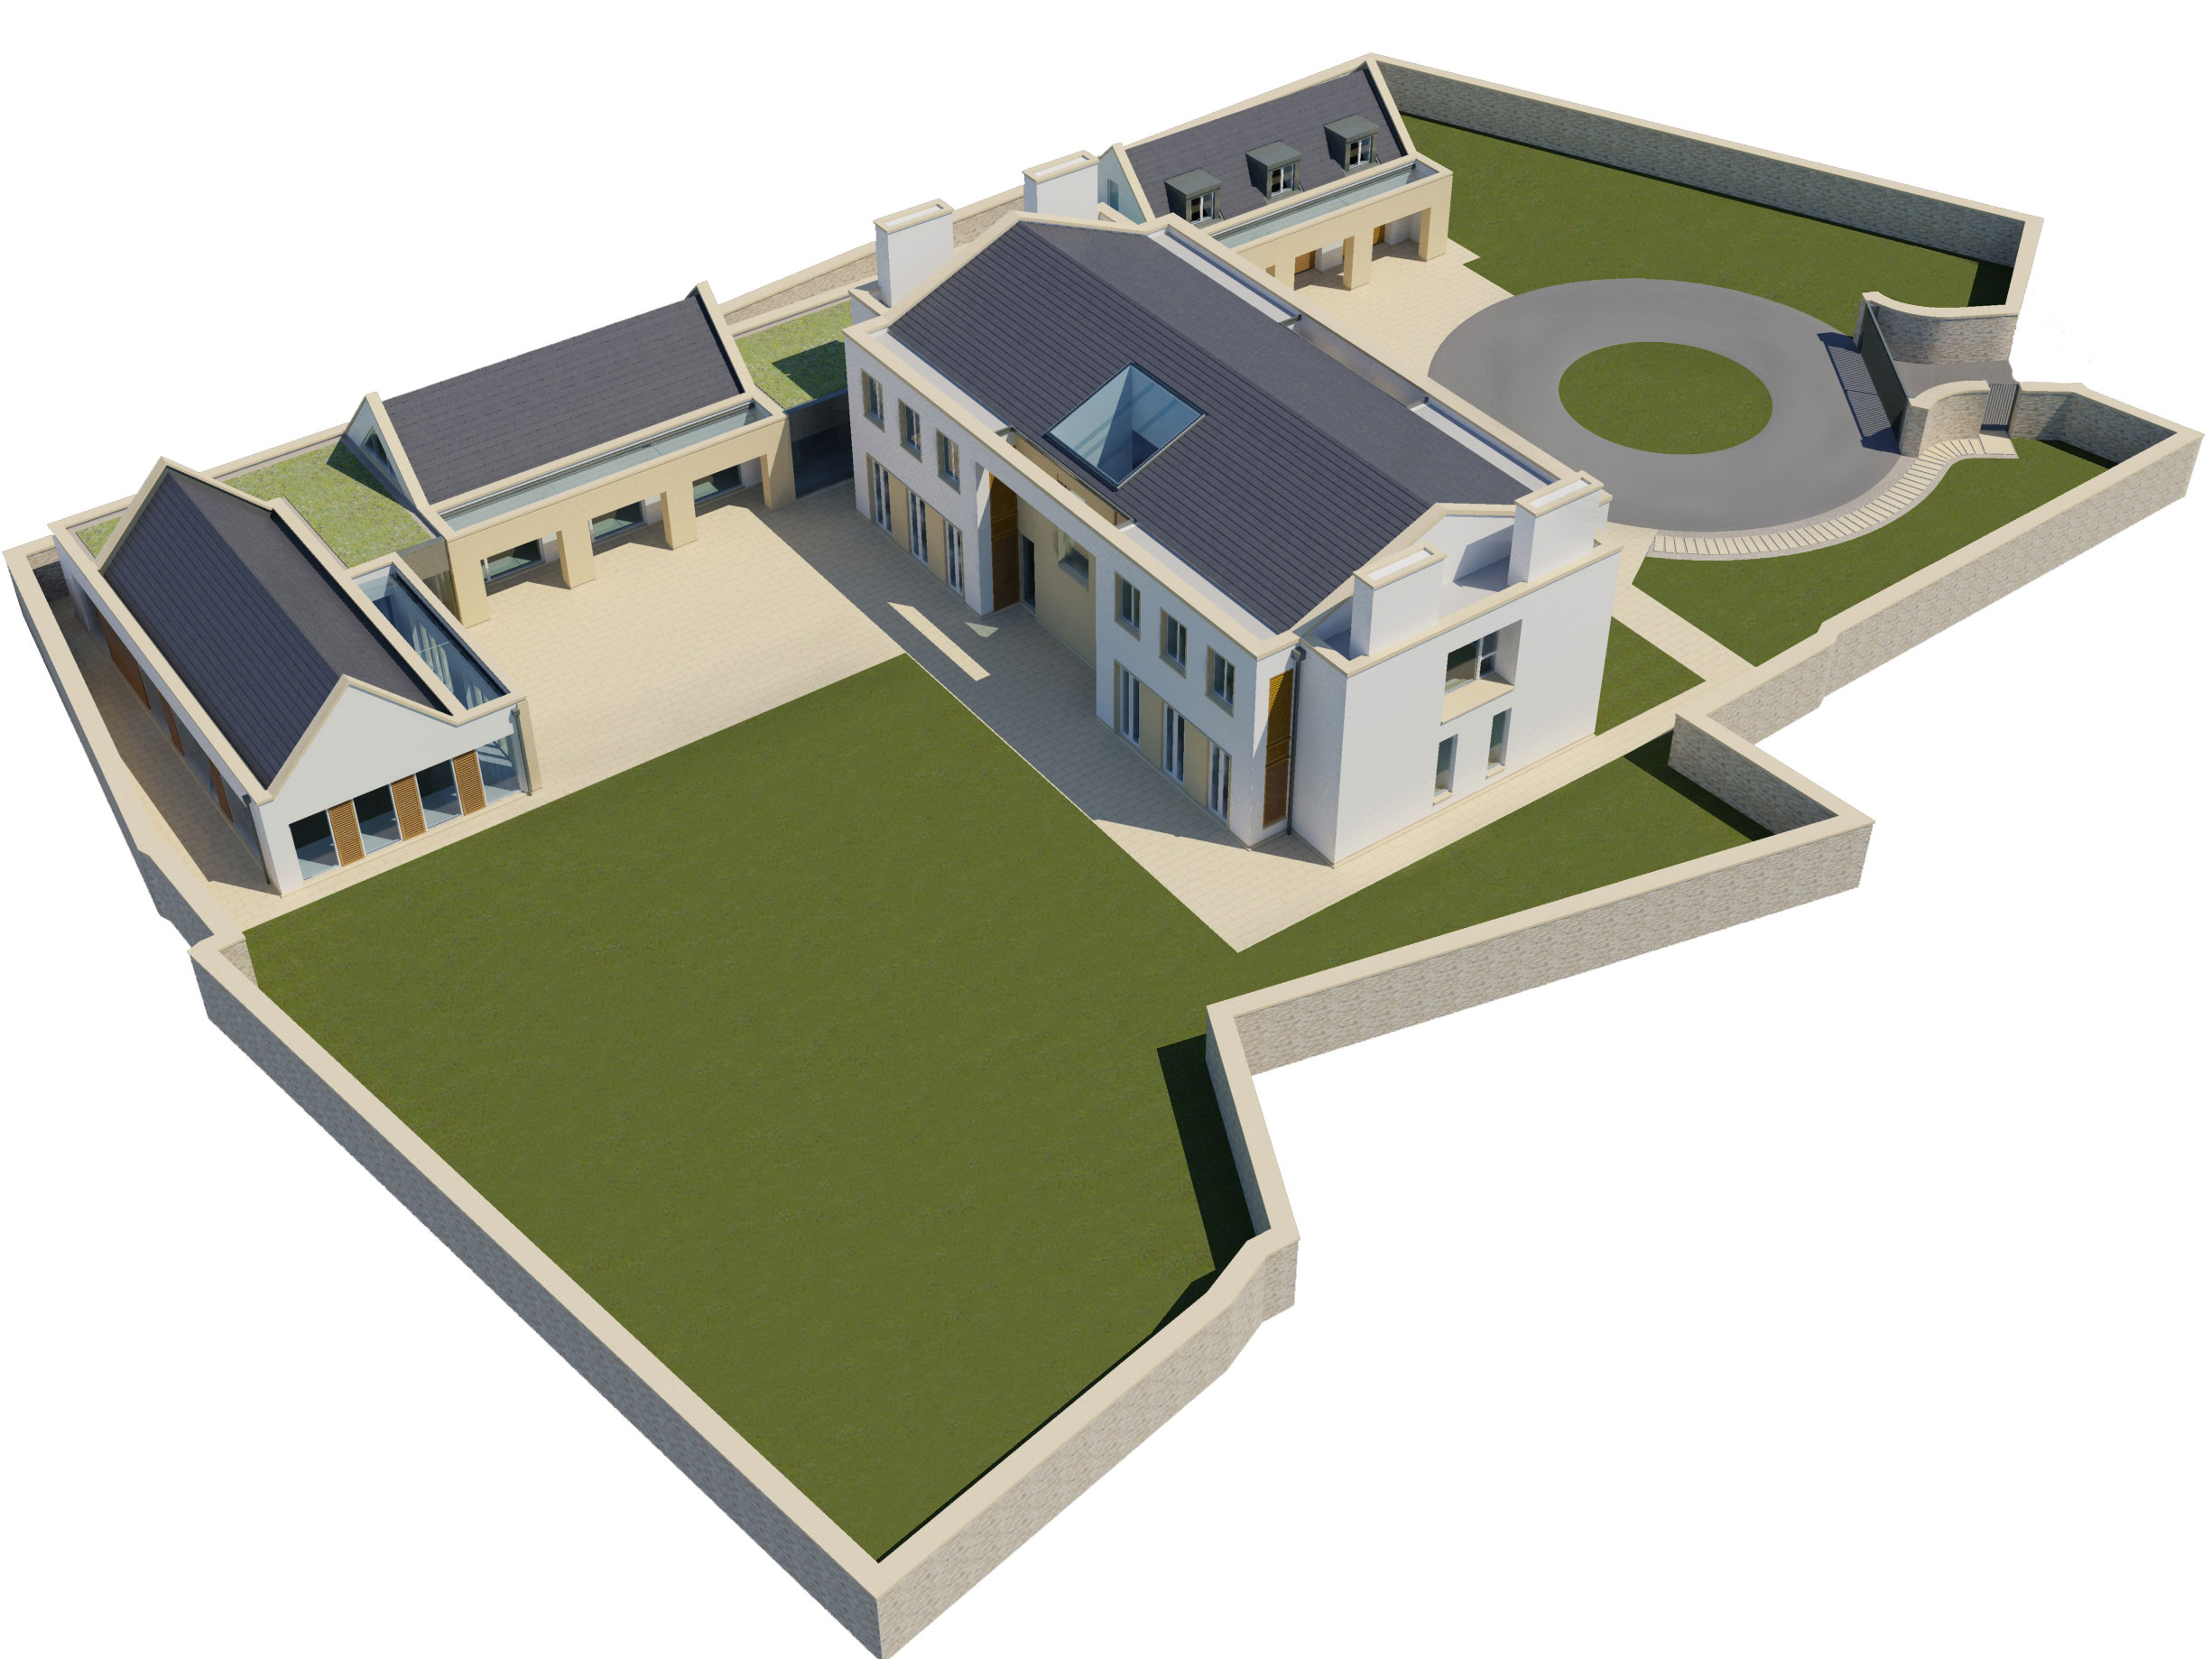 laleston_house-cgi_birdseye-rear